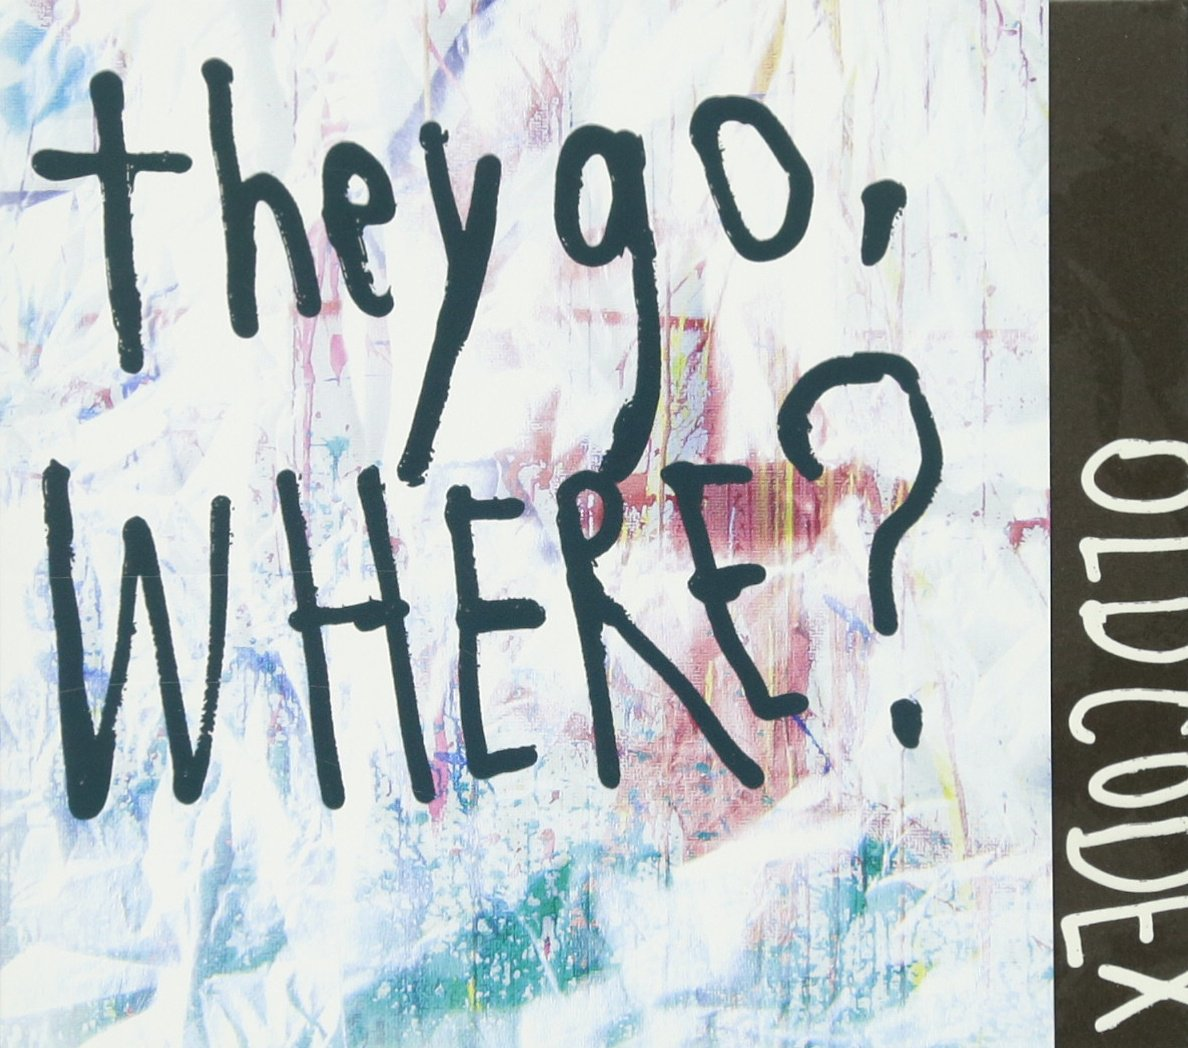 【动漫音乐】[170726]OLDCODEX 5th Album「they go, Where?」[320K] - ACG17.COM